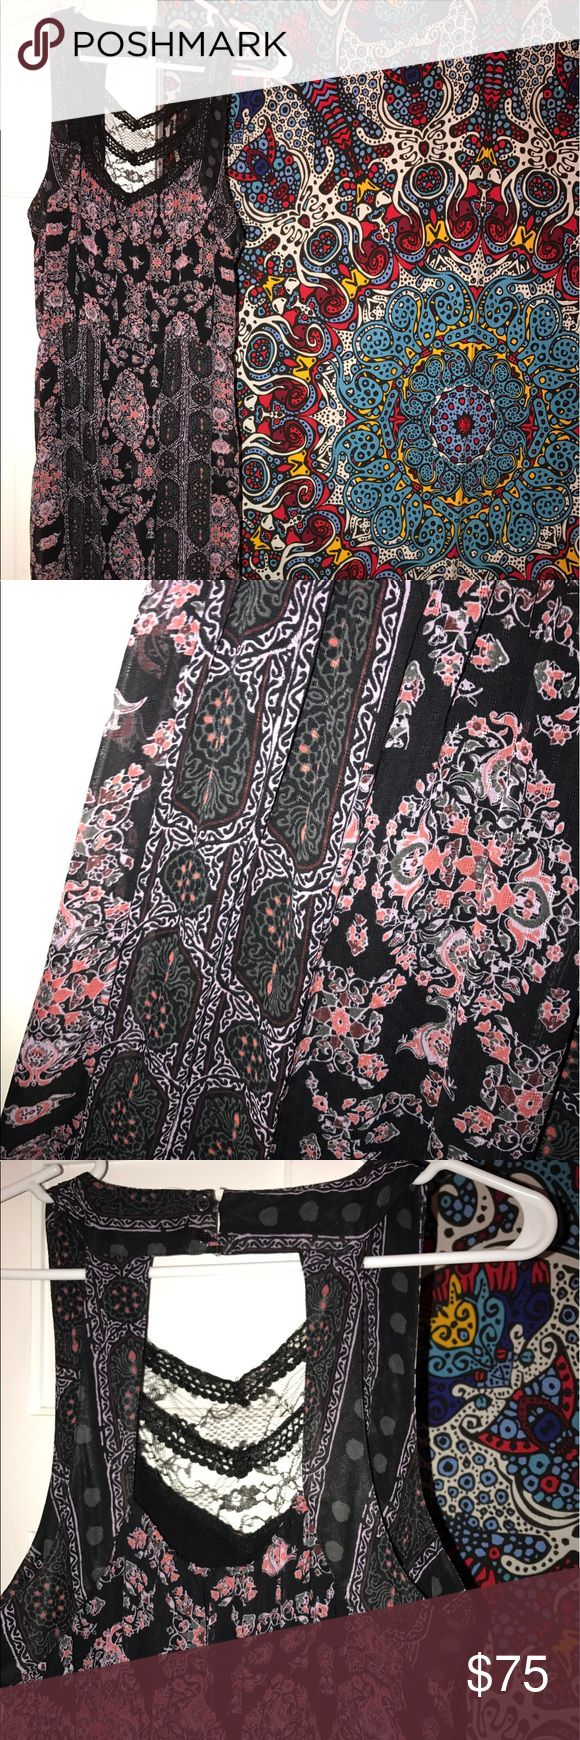 Free People Maxi Dress Very comfortable and flattering Free People Dresses Maxi